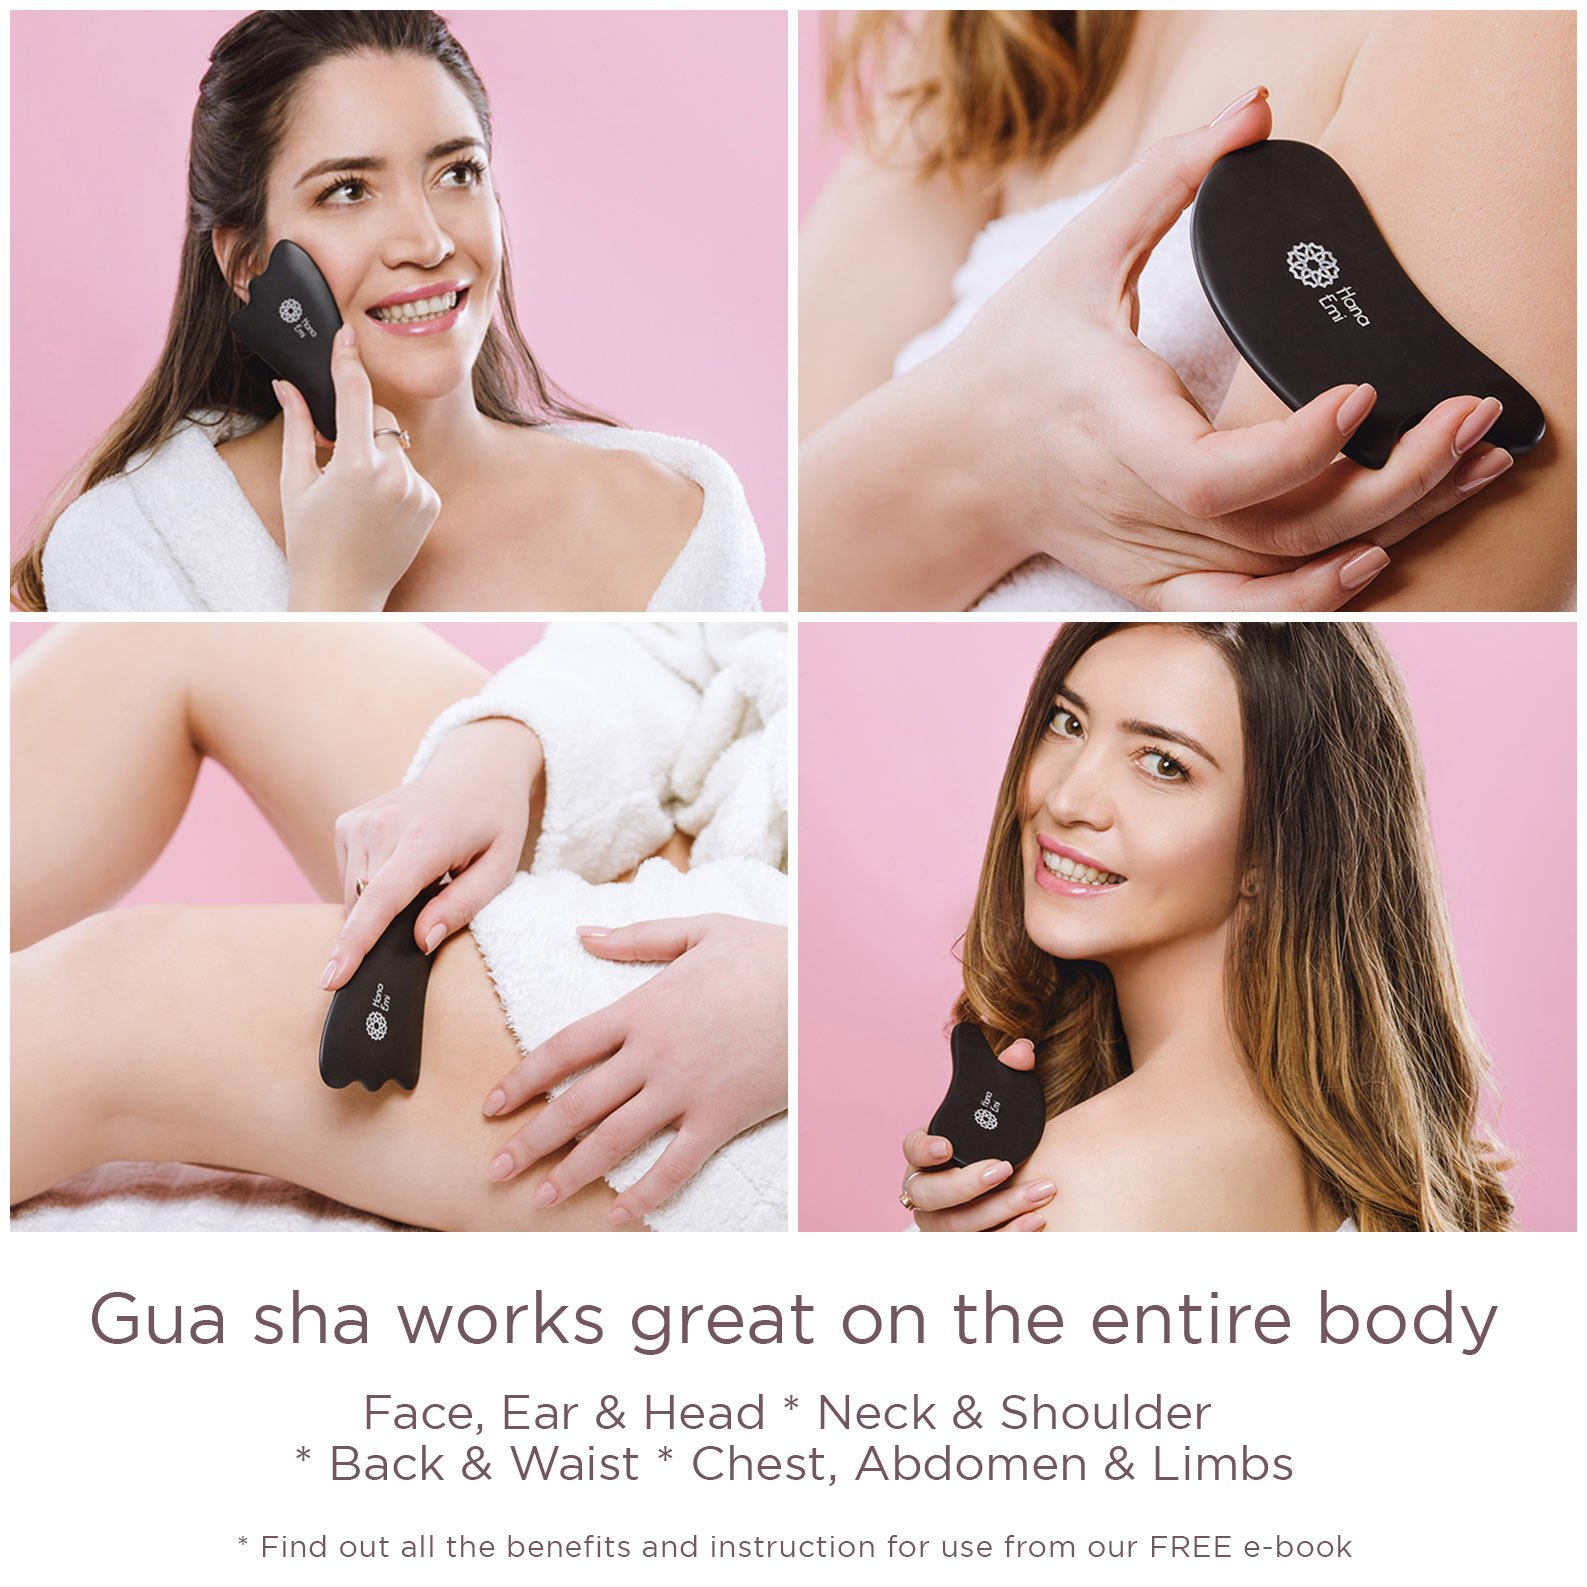 4 Gua Sha Scraping Massage Tools with Smooth Edge ✮ High Quality Handmade Sibin Bian Stone ✮ Face and Body ✮ Physical Therapy Tool for Graston, IASTM, ASTYM ✮ STORAGE BAG ✮ E-BOOK BONUS (Complete Set) by Hana Emi (Image #4)